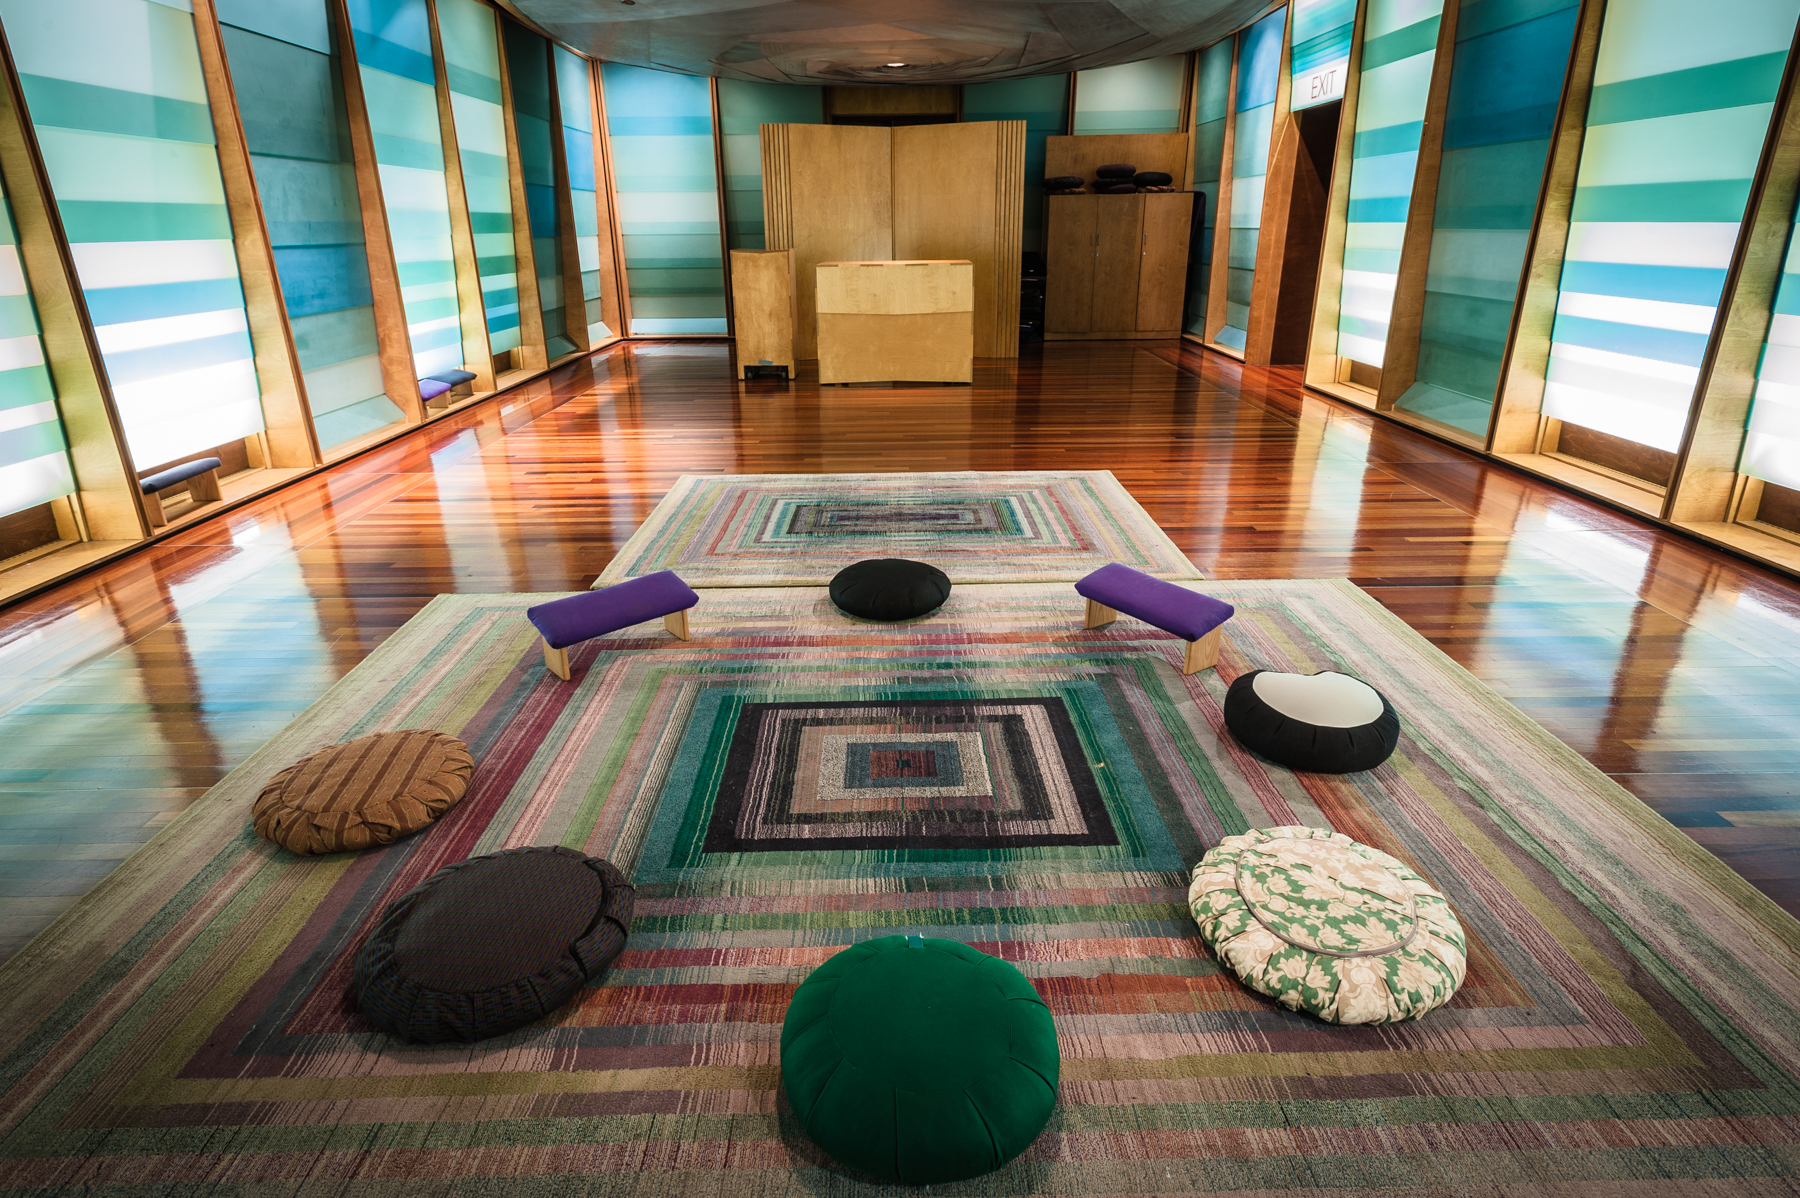 Meditation cushions arranged in the Sacred Space